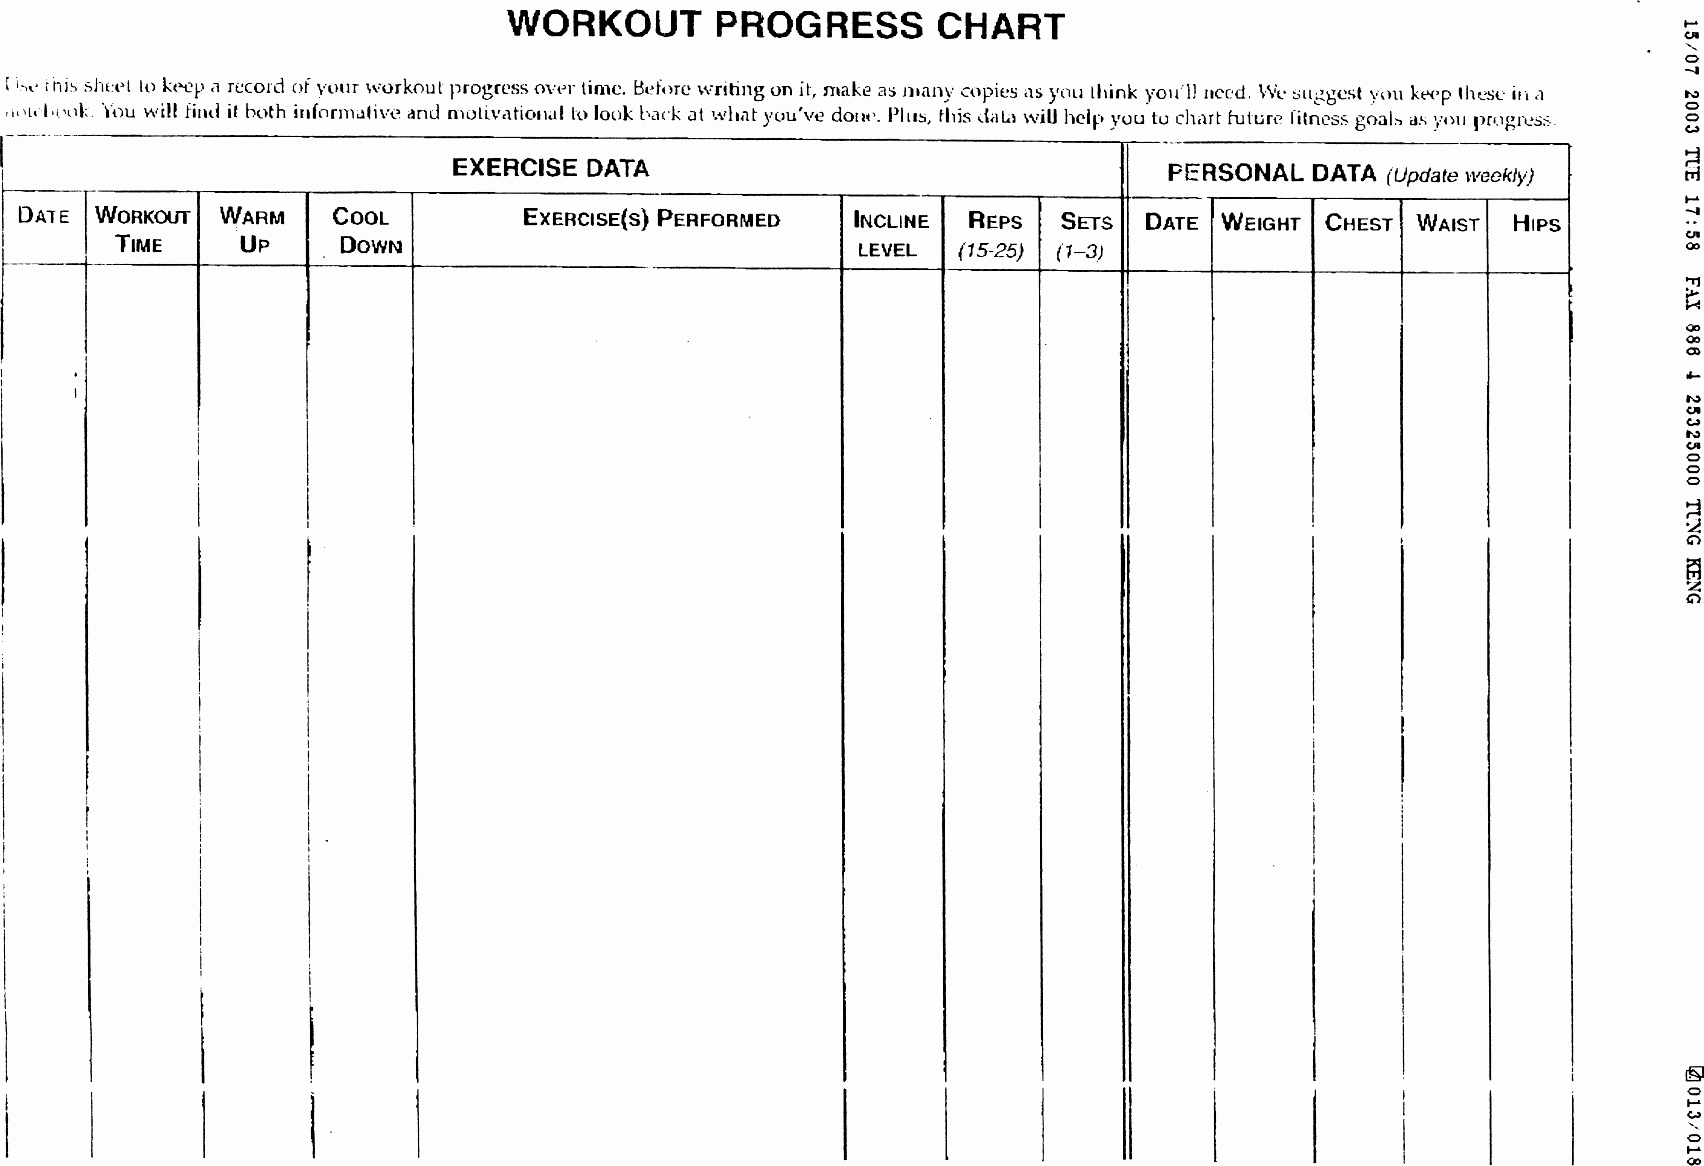 Biggest Loser Weight Loss Calculator Spreadsheet Throughout 48 New Images Of Biggest Loser Weight Loss Calculator